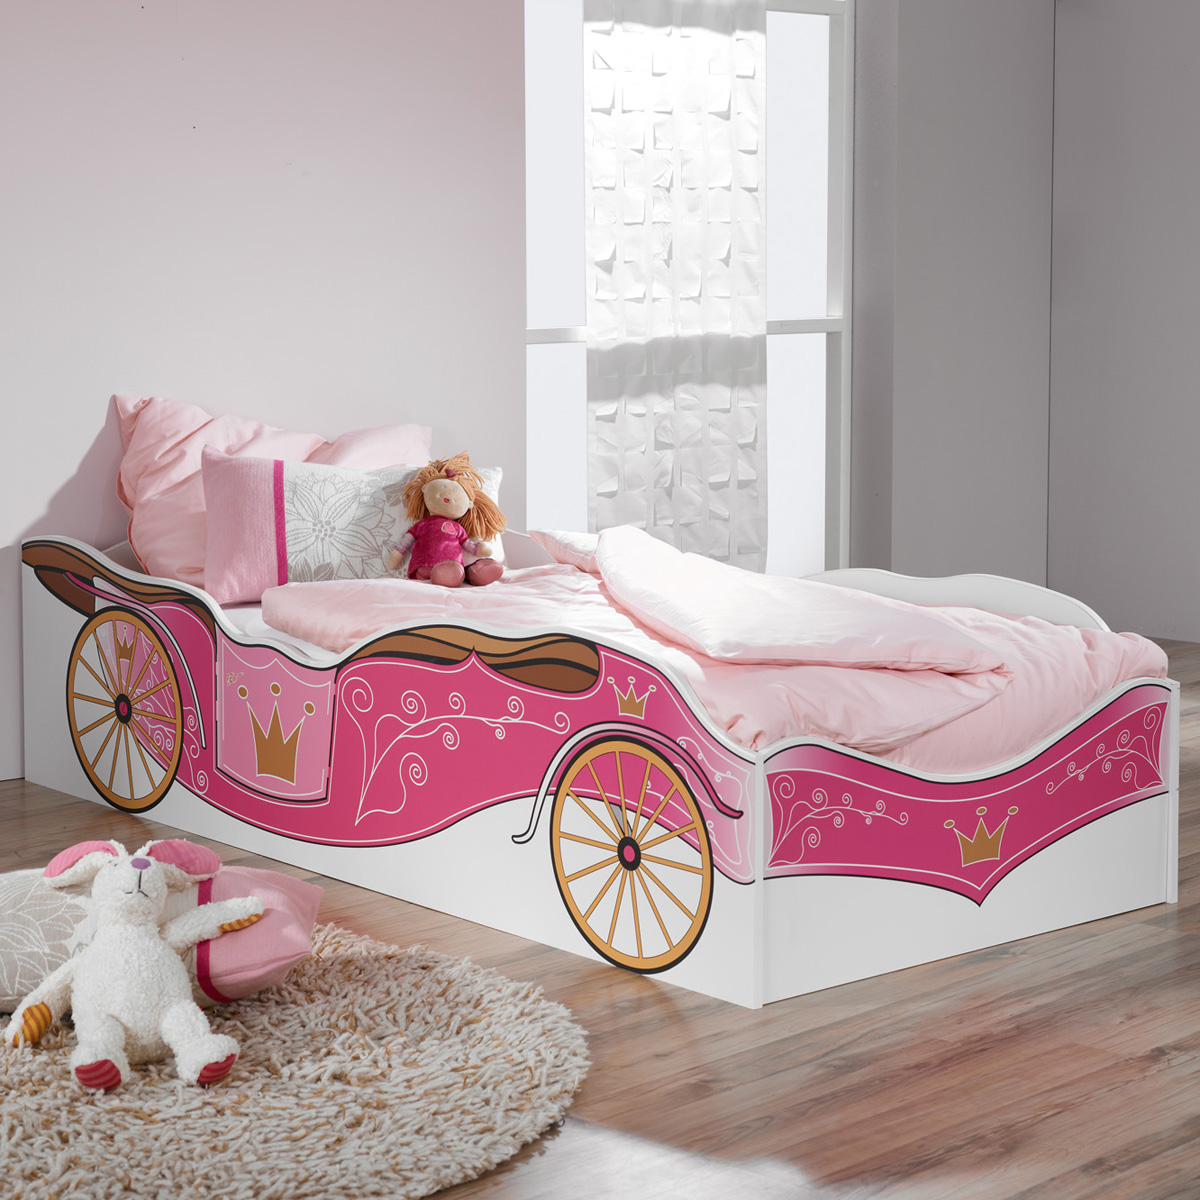 kinderbett kate motiv kutsche prinzessin bett in wei und rosa dekor ebay. Black Bedroom Furniture Sets. Home Design Ideas